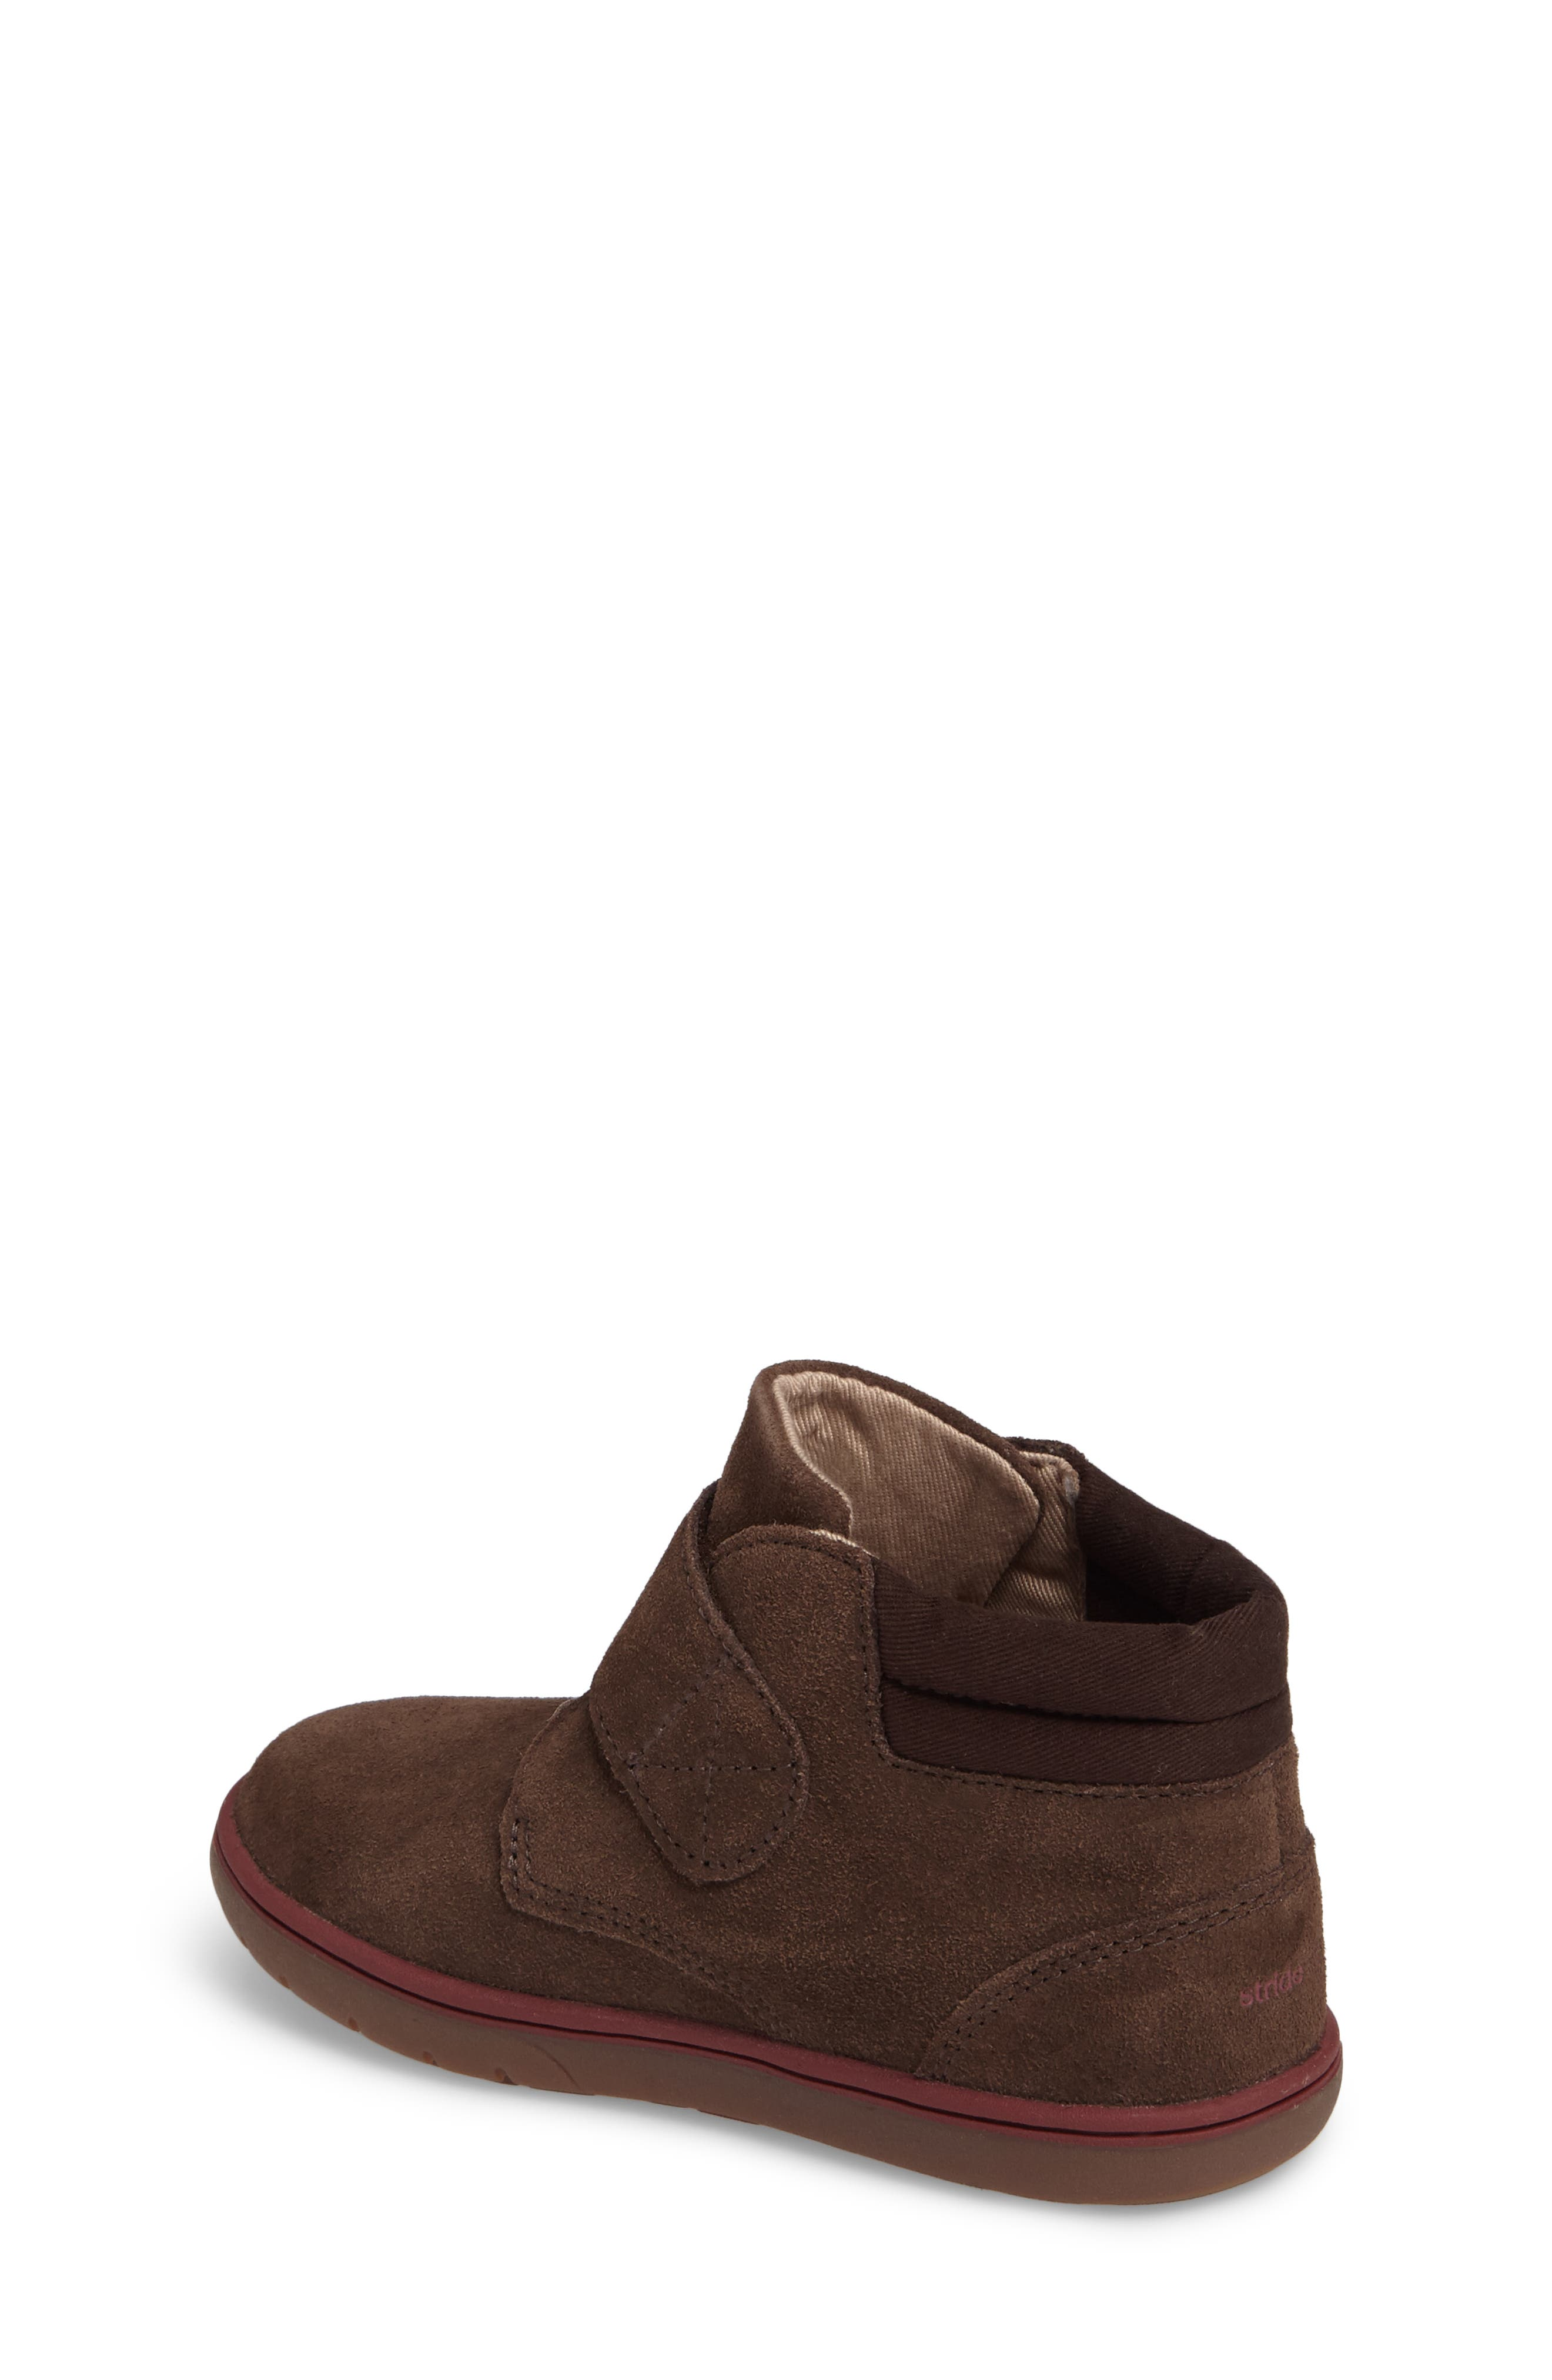 SRtech<sup>™</sup> Lincoln Bootie,                             Alternate thumbnail 2, color,                             BROWN SUEDE